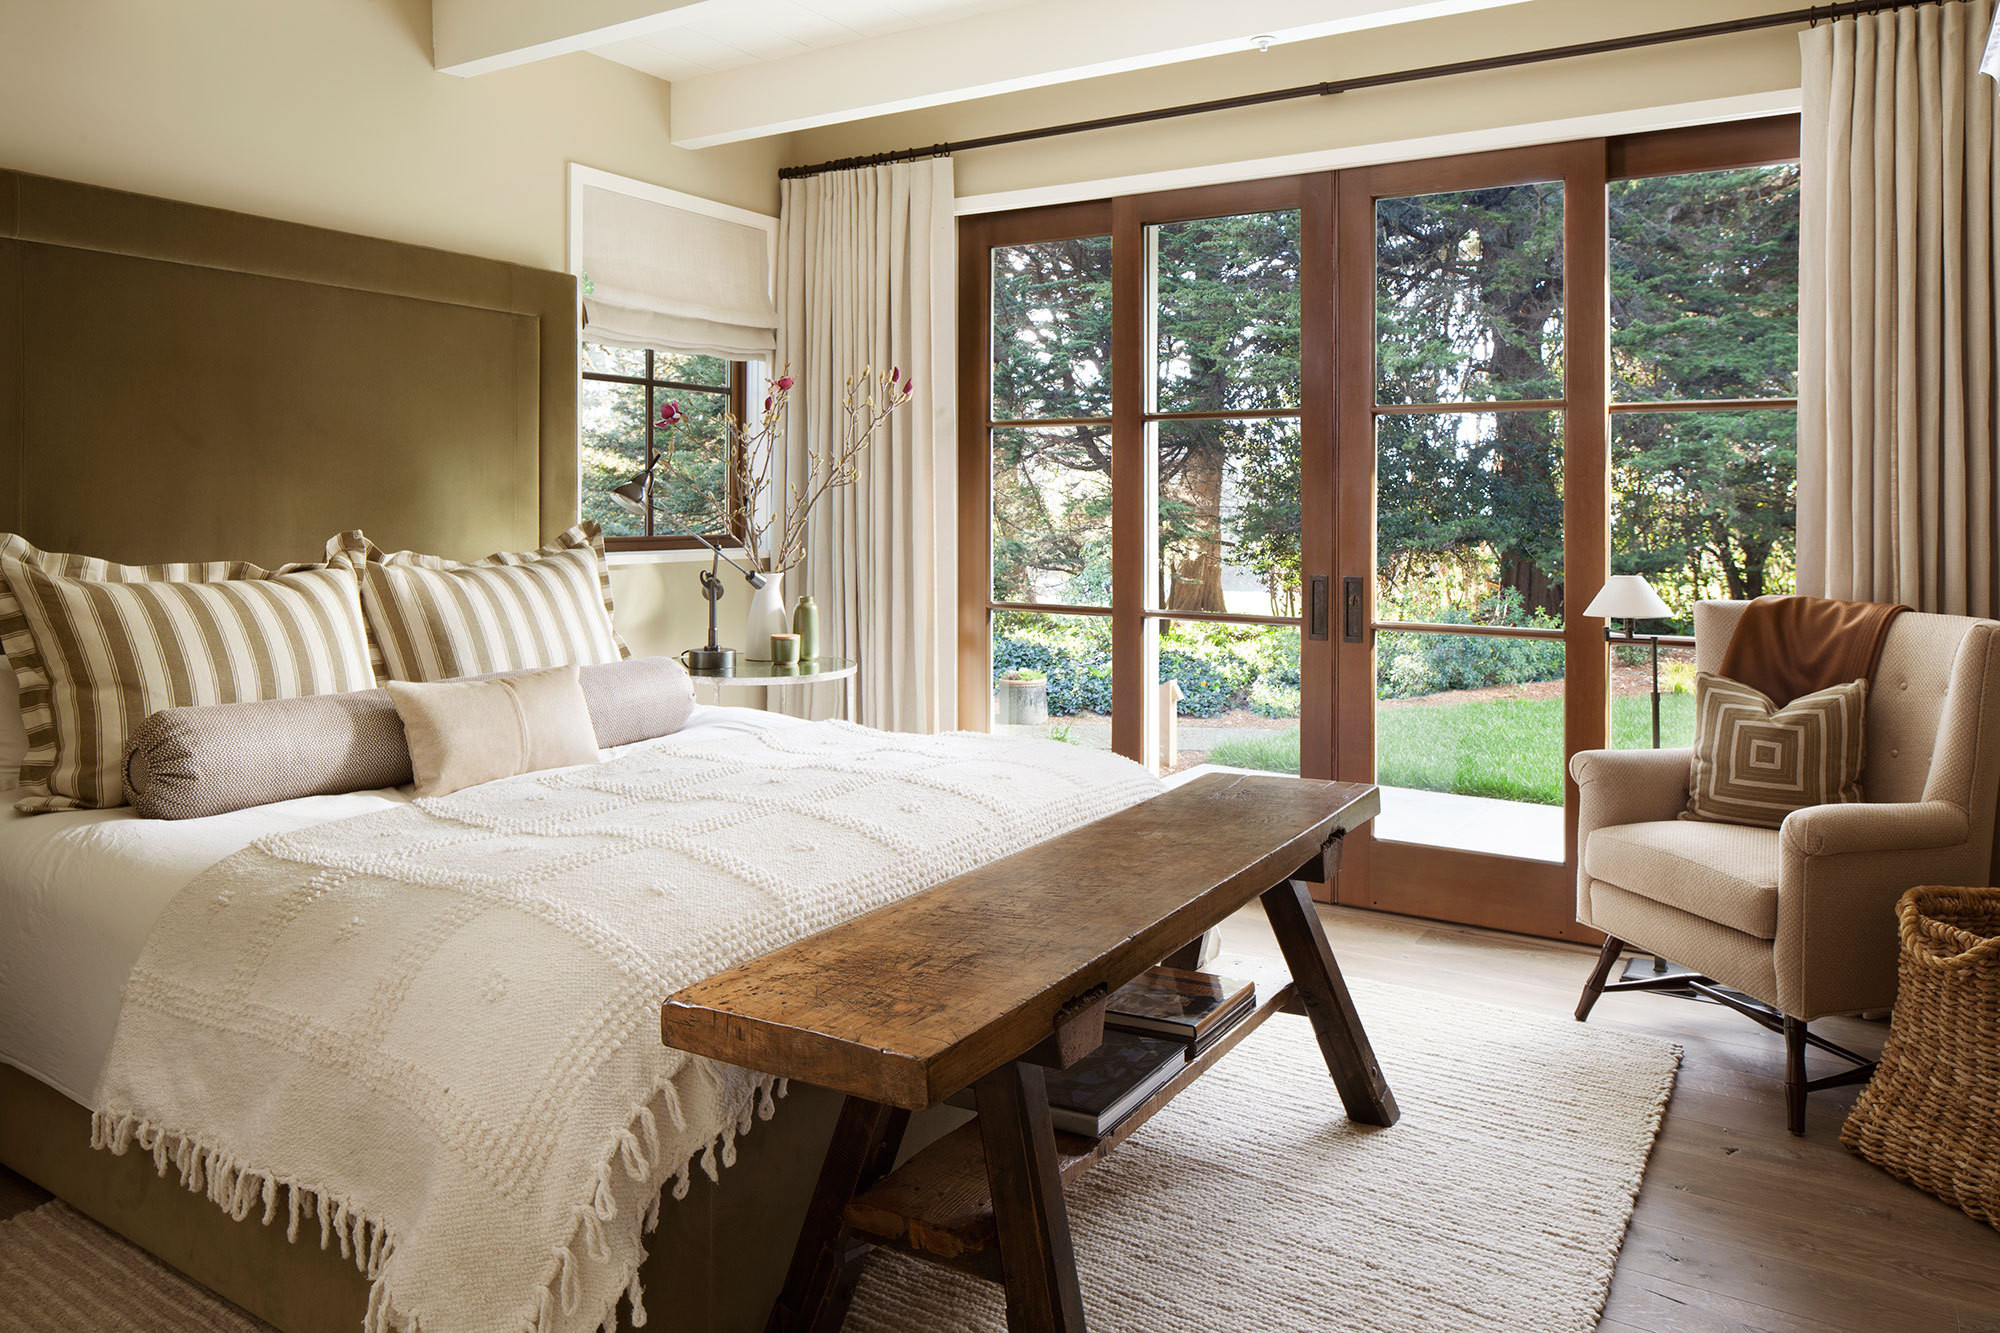 The master bedroom maintains the house's neutral palette thanks to Farrow & Ball's Fawn No. 10 on the walls.